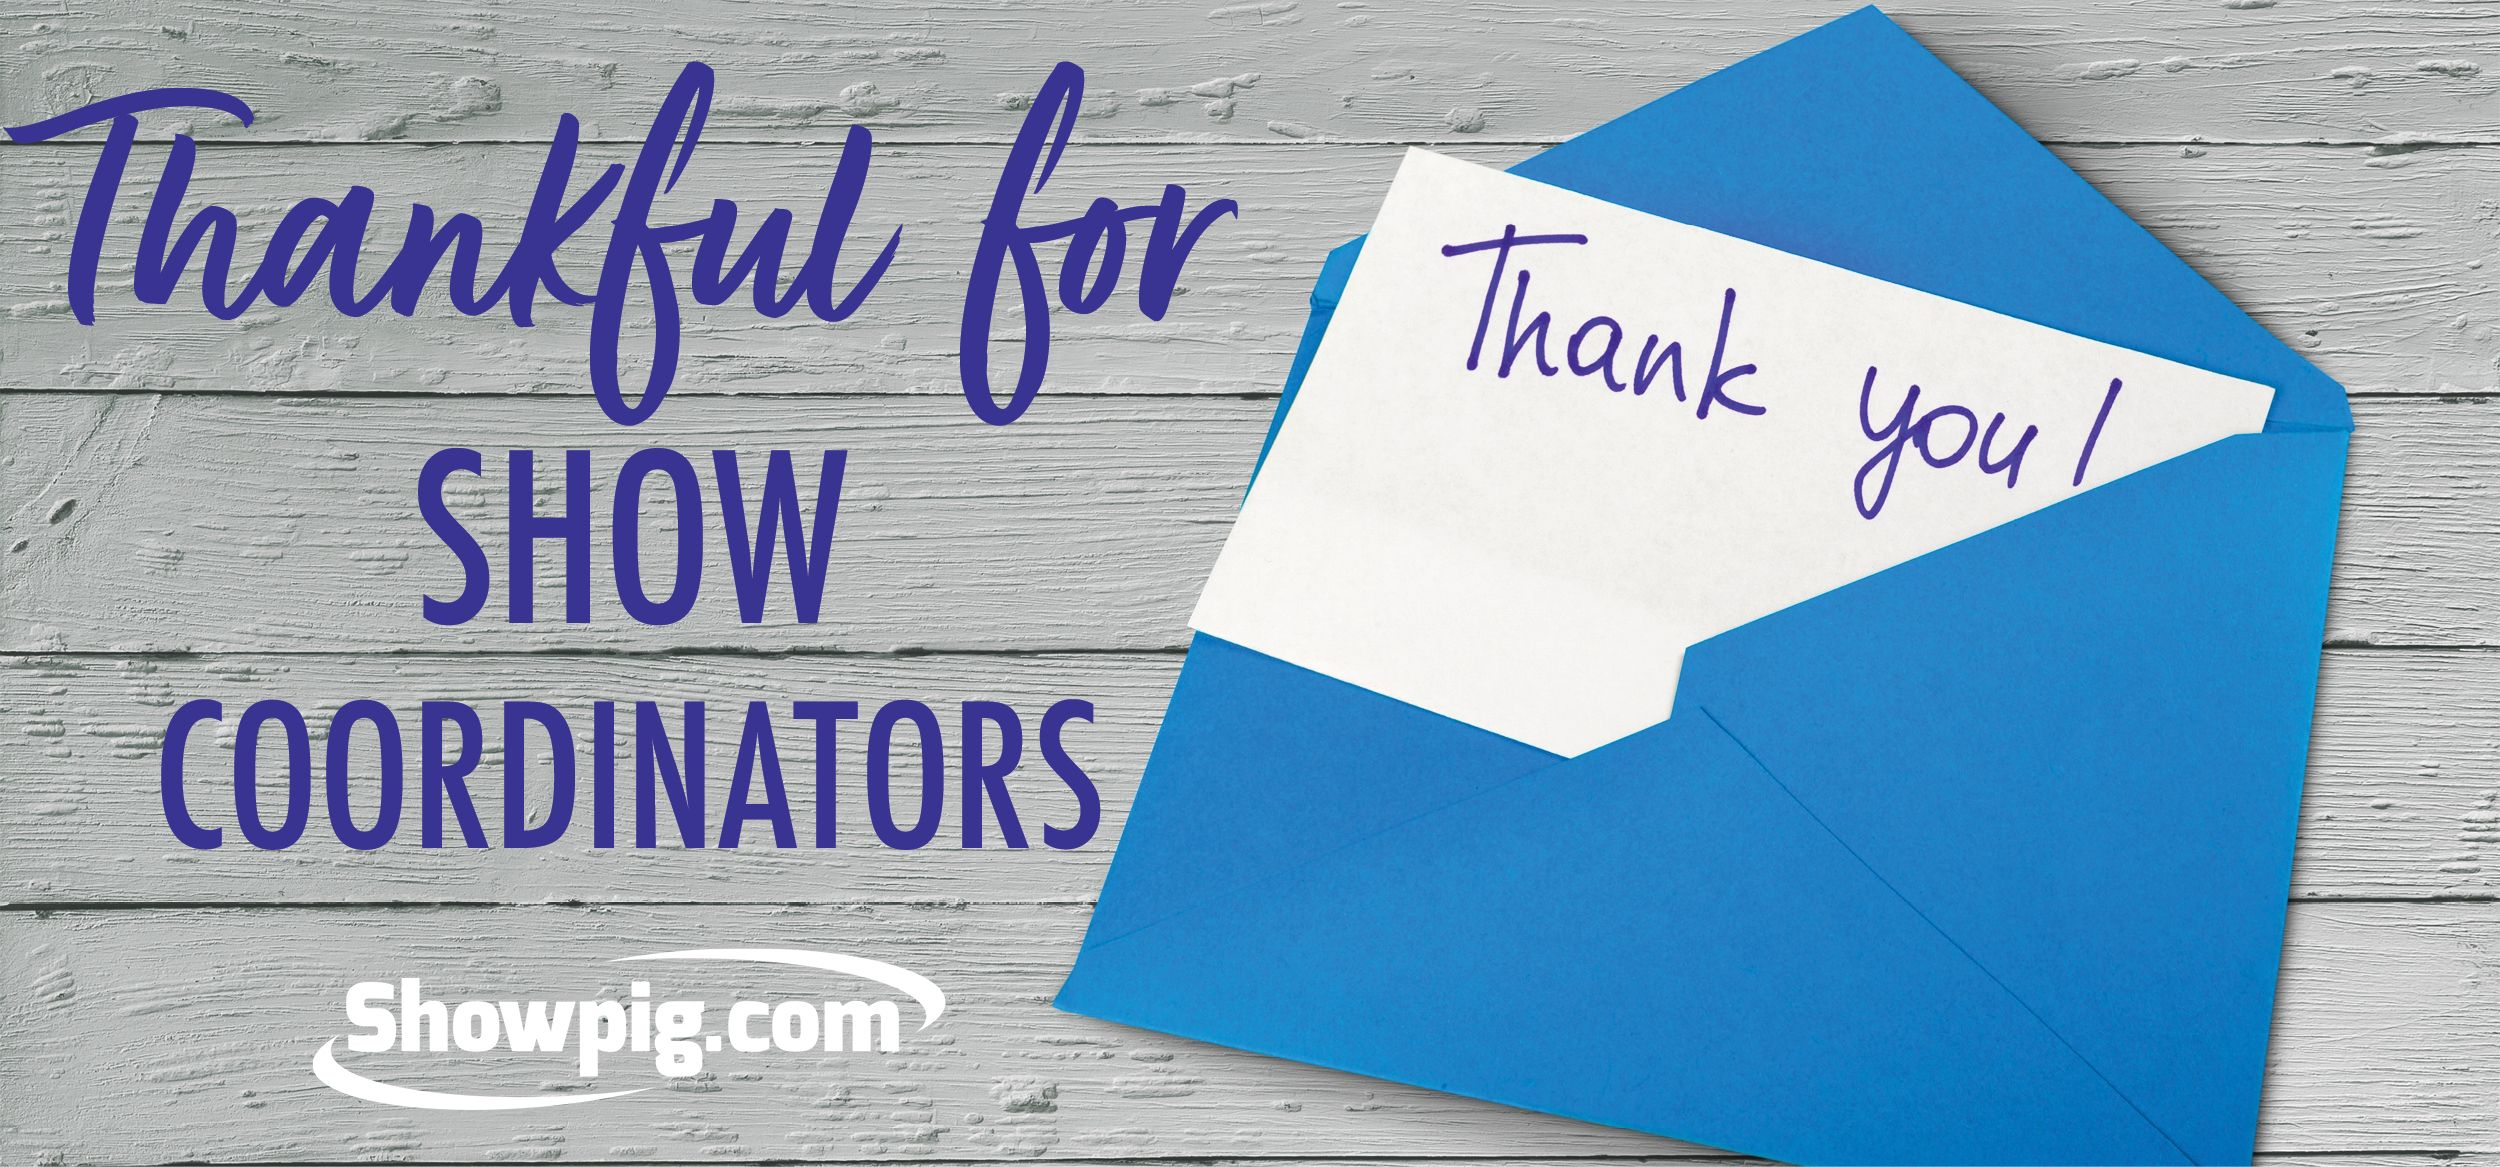 Featured image for the article titled A thank you note to show coordinators